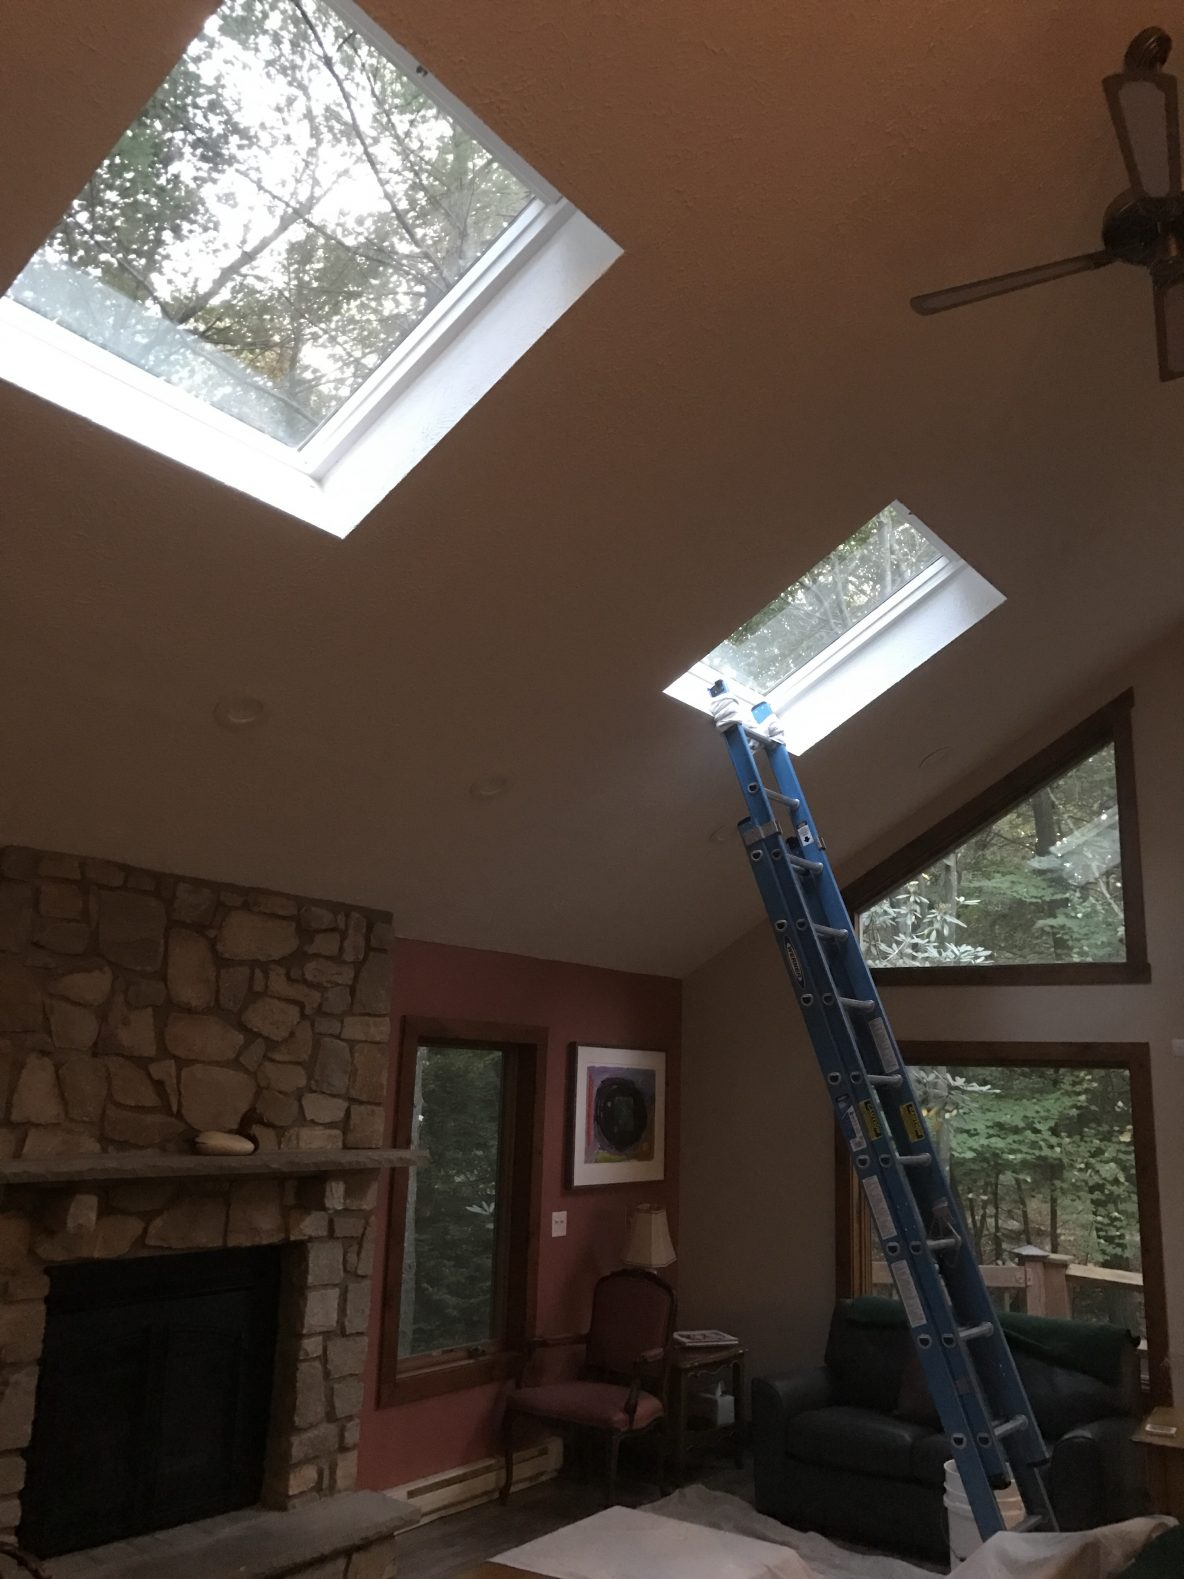 How to Block the Suns Heat from Coming Through your Homes Skylights?